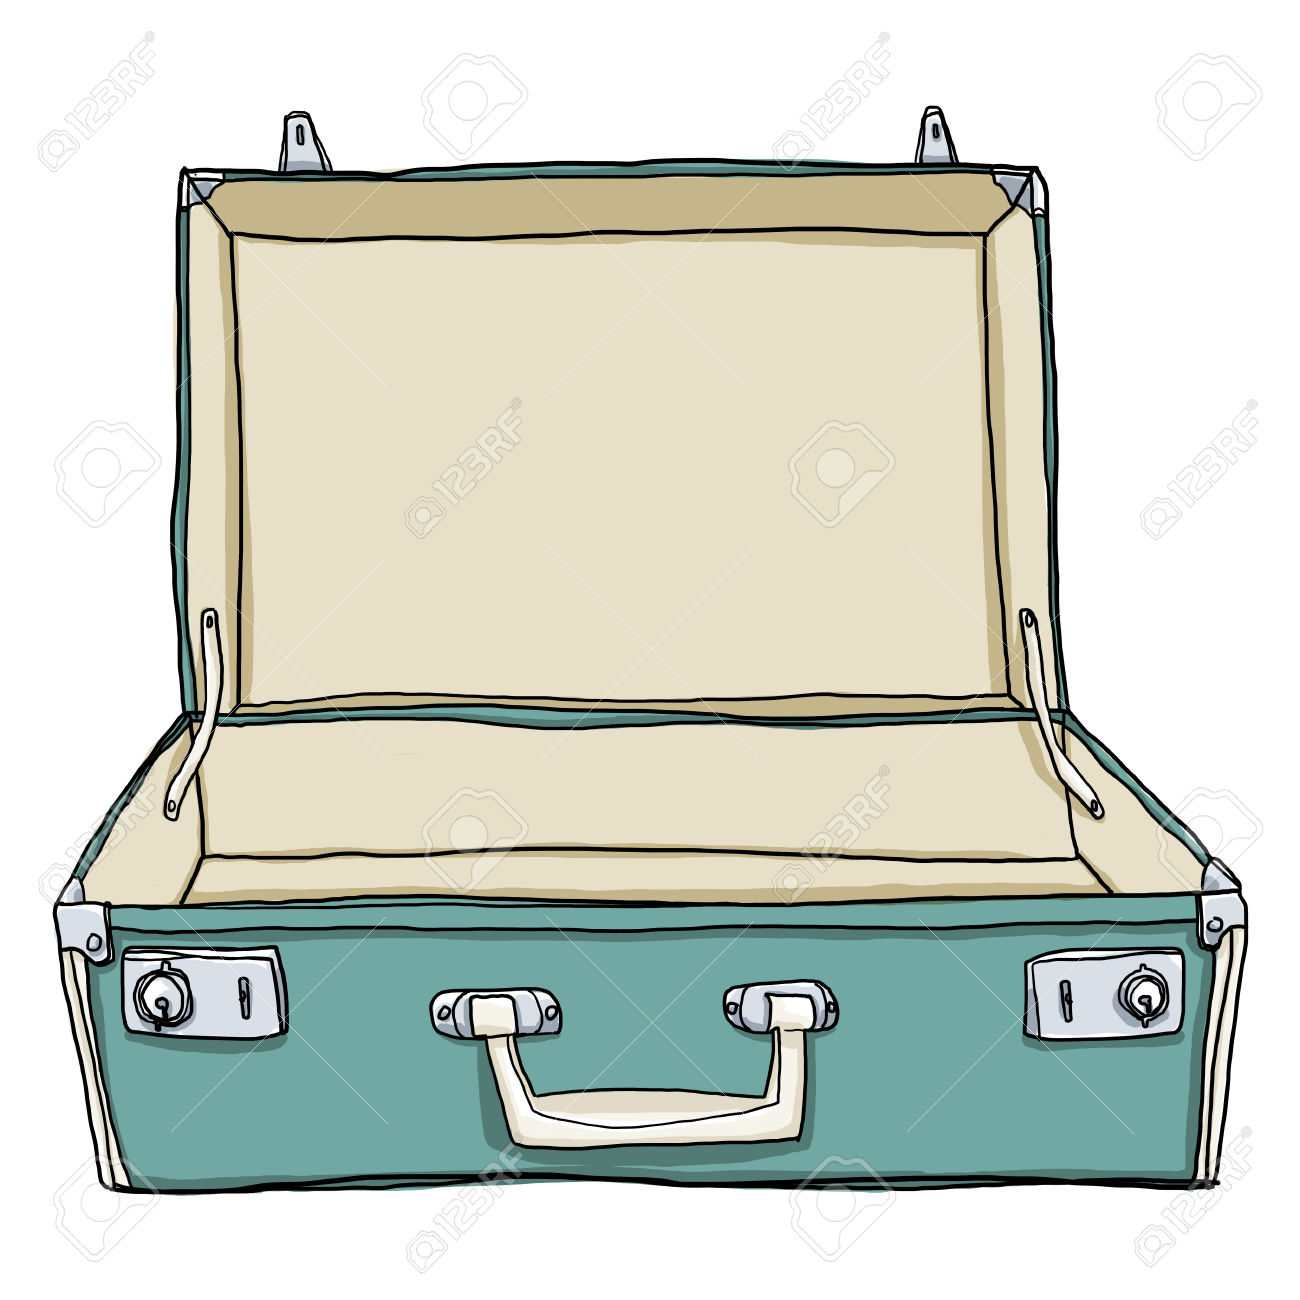 Luggage clipart opened suitcase. Collection of free download